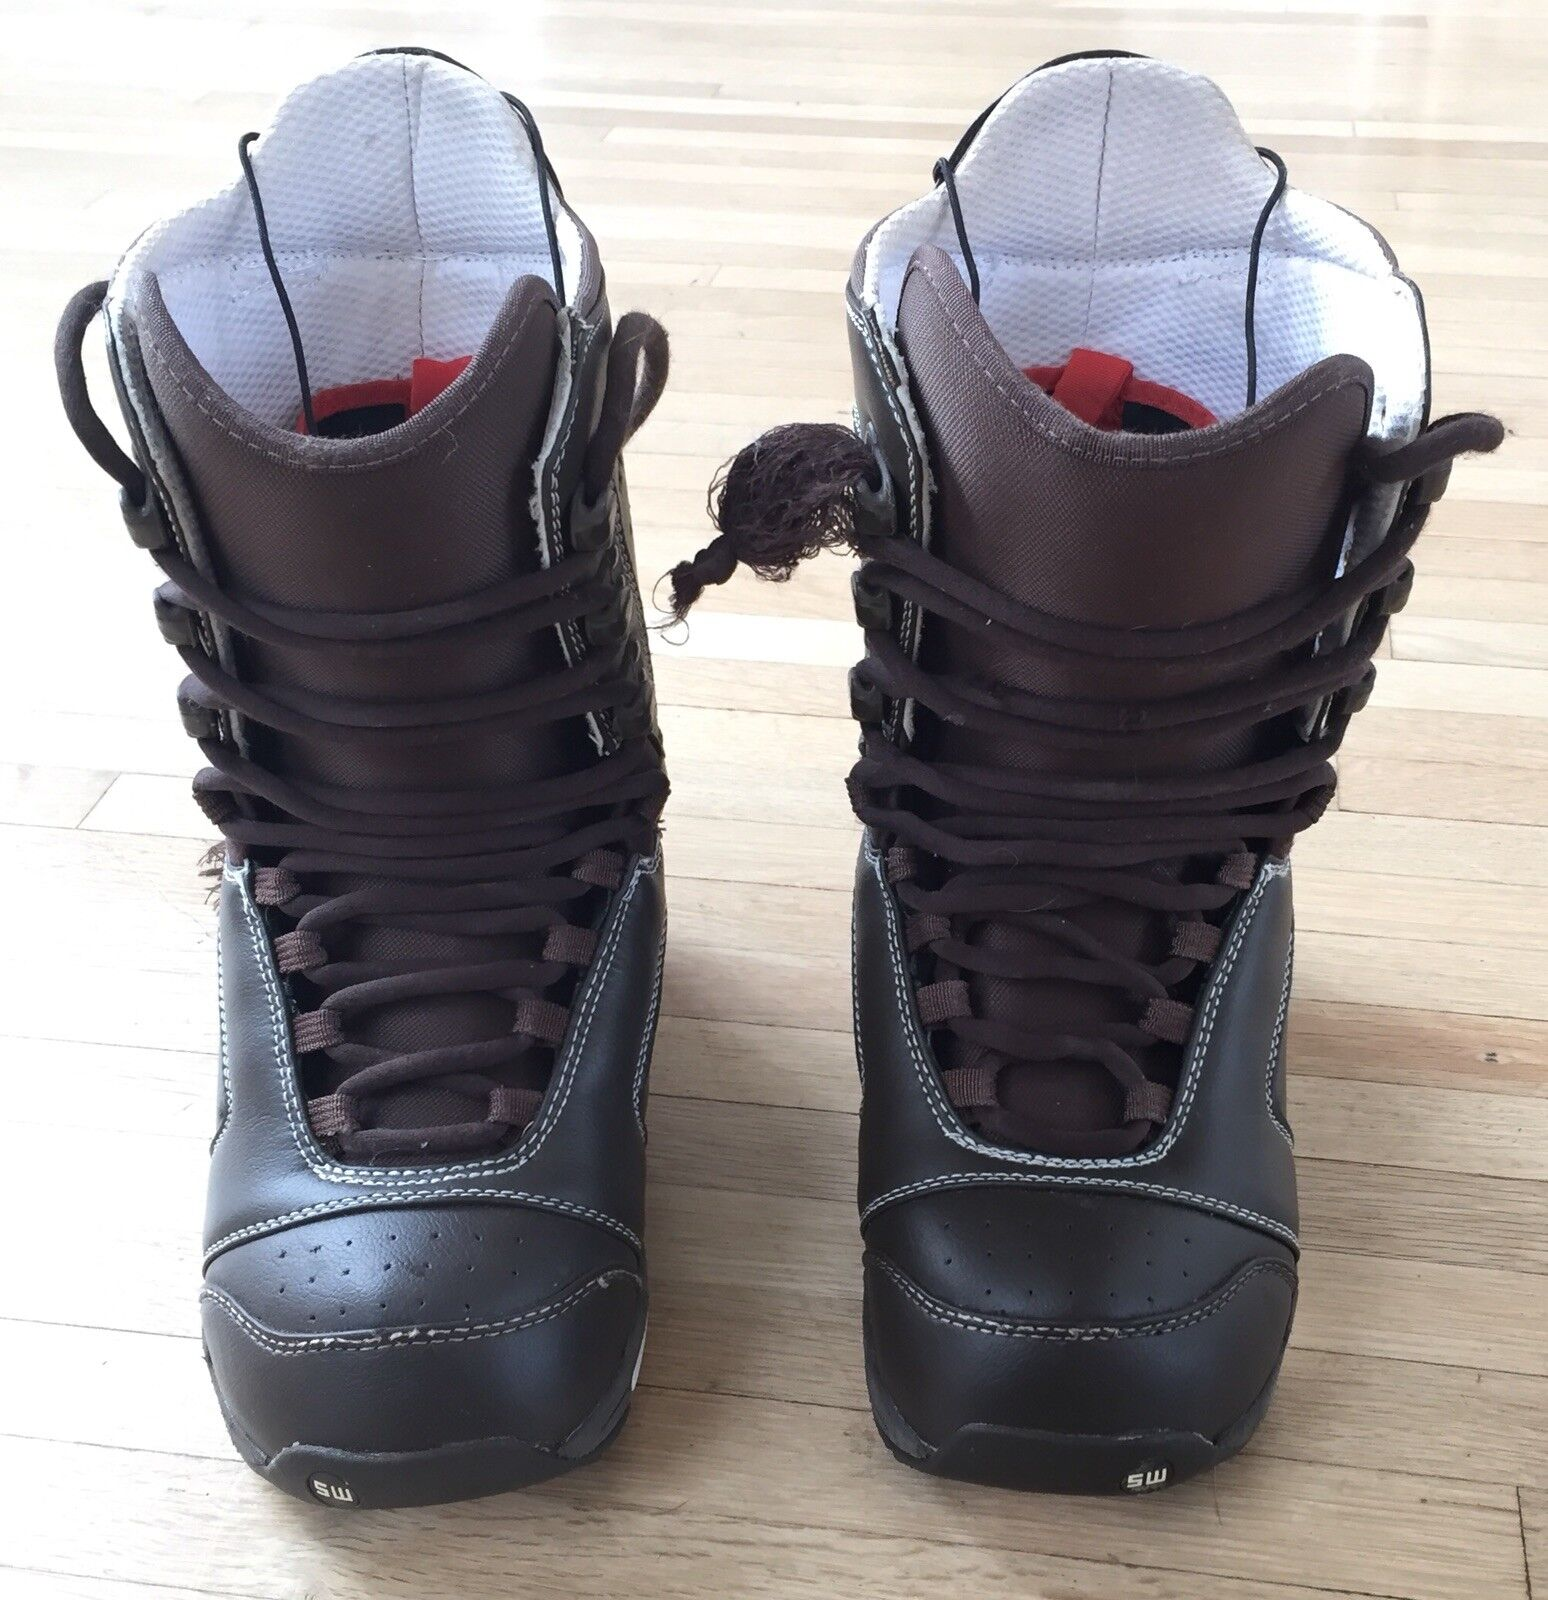 MEN'S 7- BURTON - SHAUN WHITE - Brown SNOWBOARD BOOTS shoes Winter Snow Gear